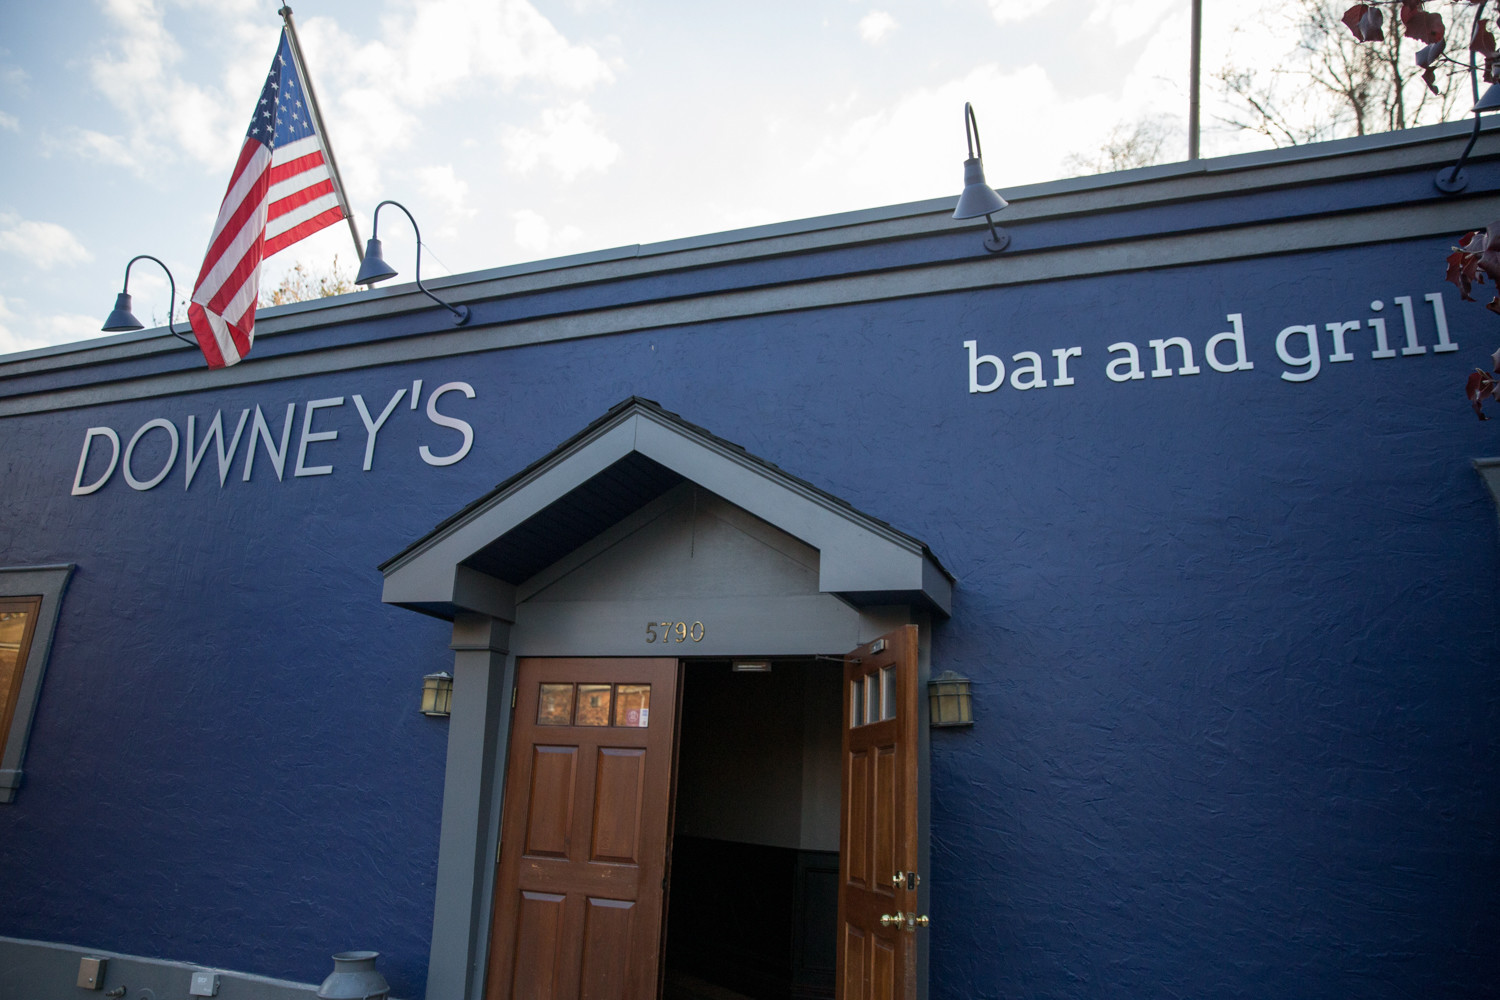 The exterior has been repainted and new signage installed for the opening of Downey's Bar and Grill.